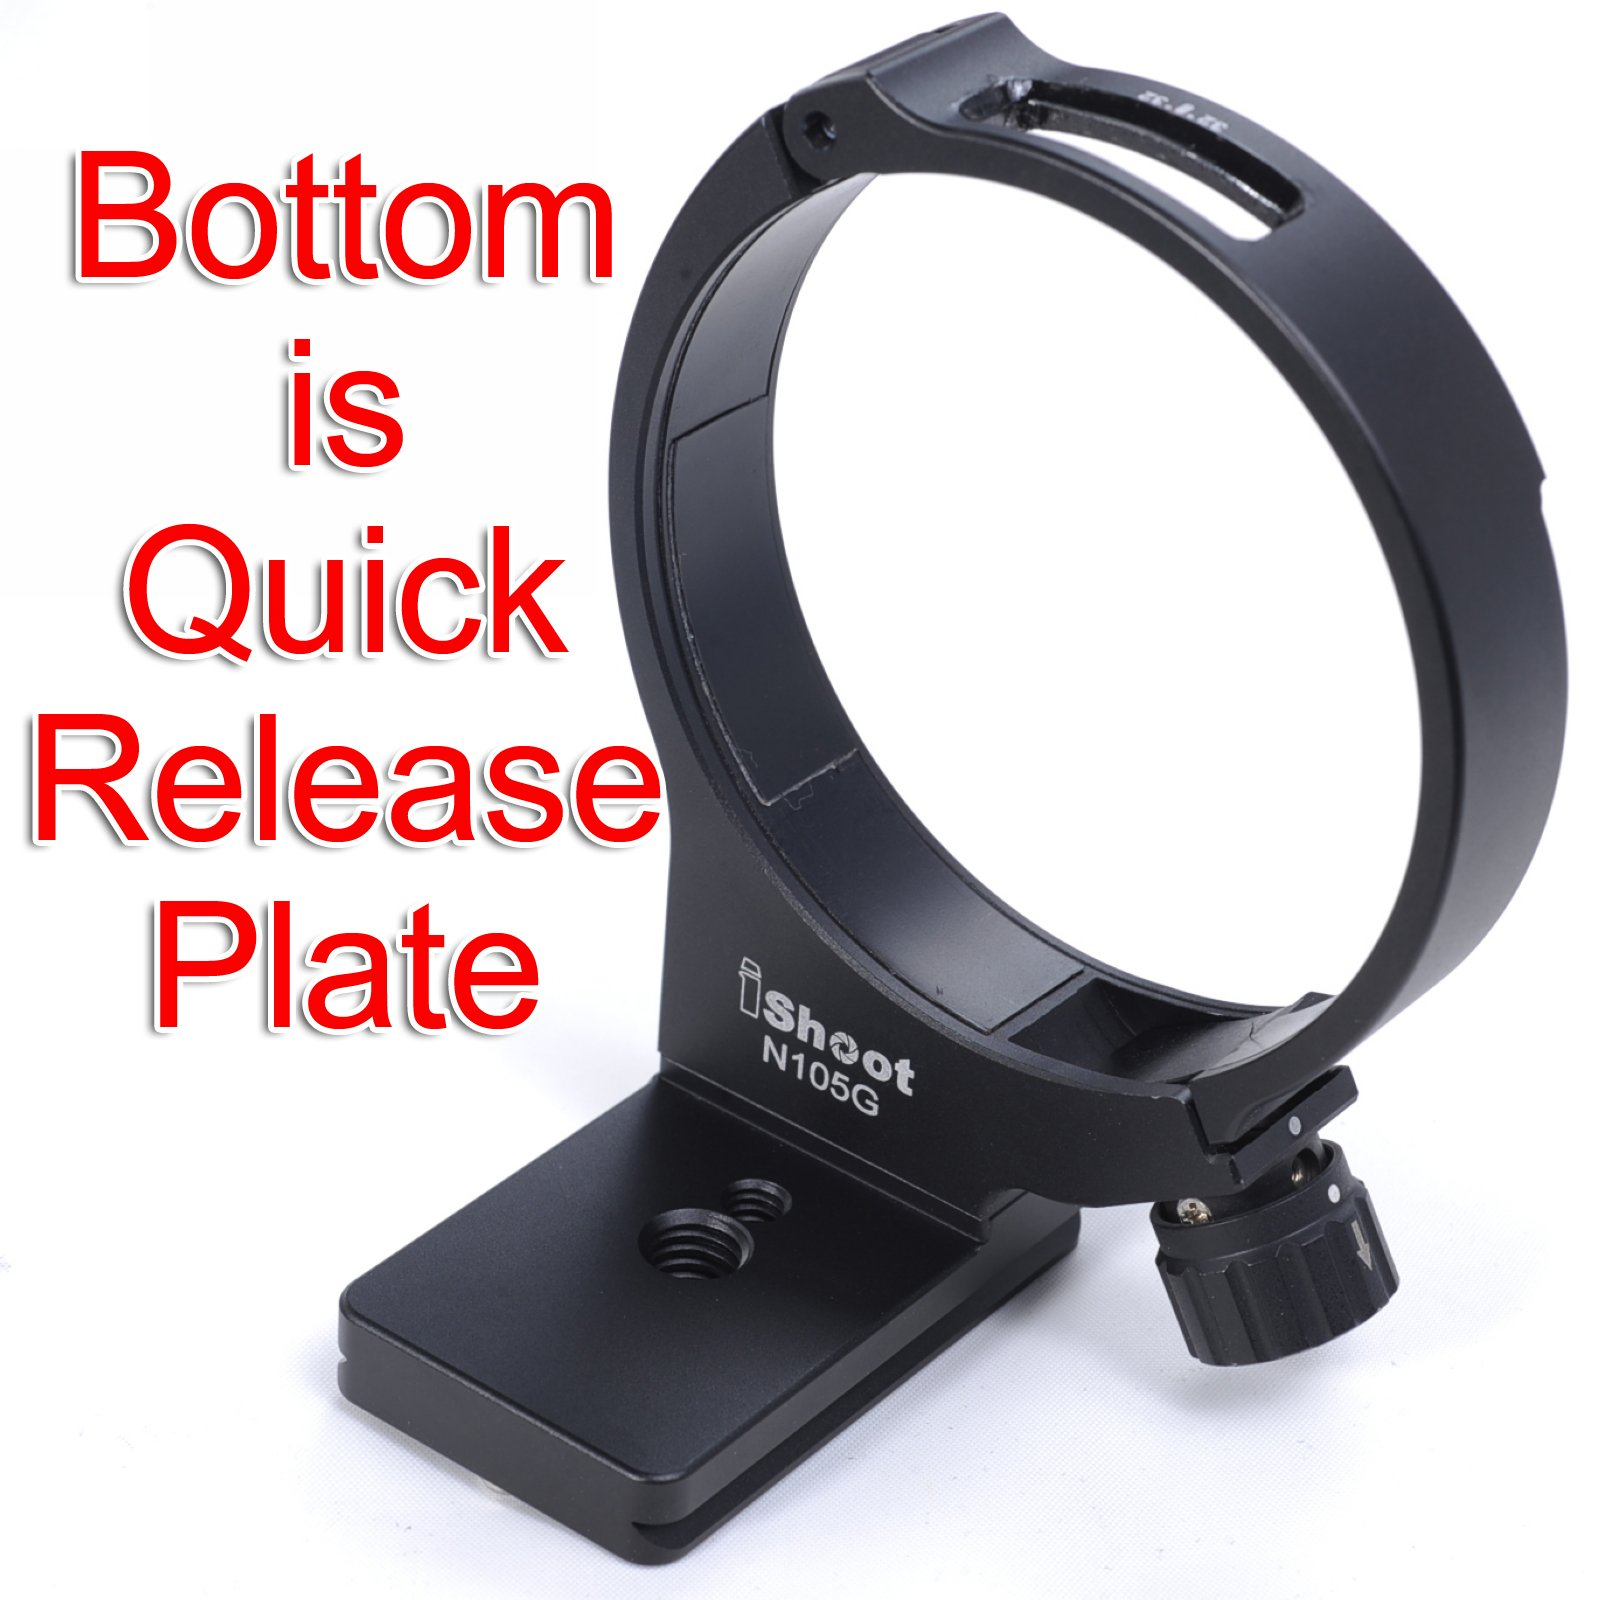 CNC Precisely Machined Aviation Aluminum Lens Support Holder Collar Tripod Mount Ring for Nikon AF-S 105mm f/2.8G IF-ED VR MICRO Macro Lens -Bottom is Camera Quick Release Plate